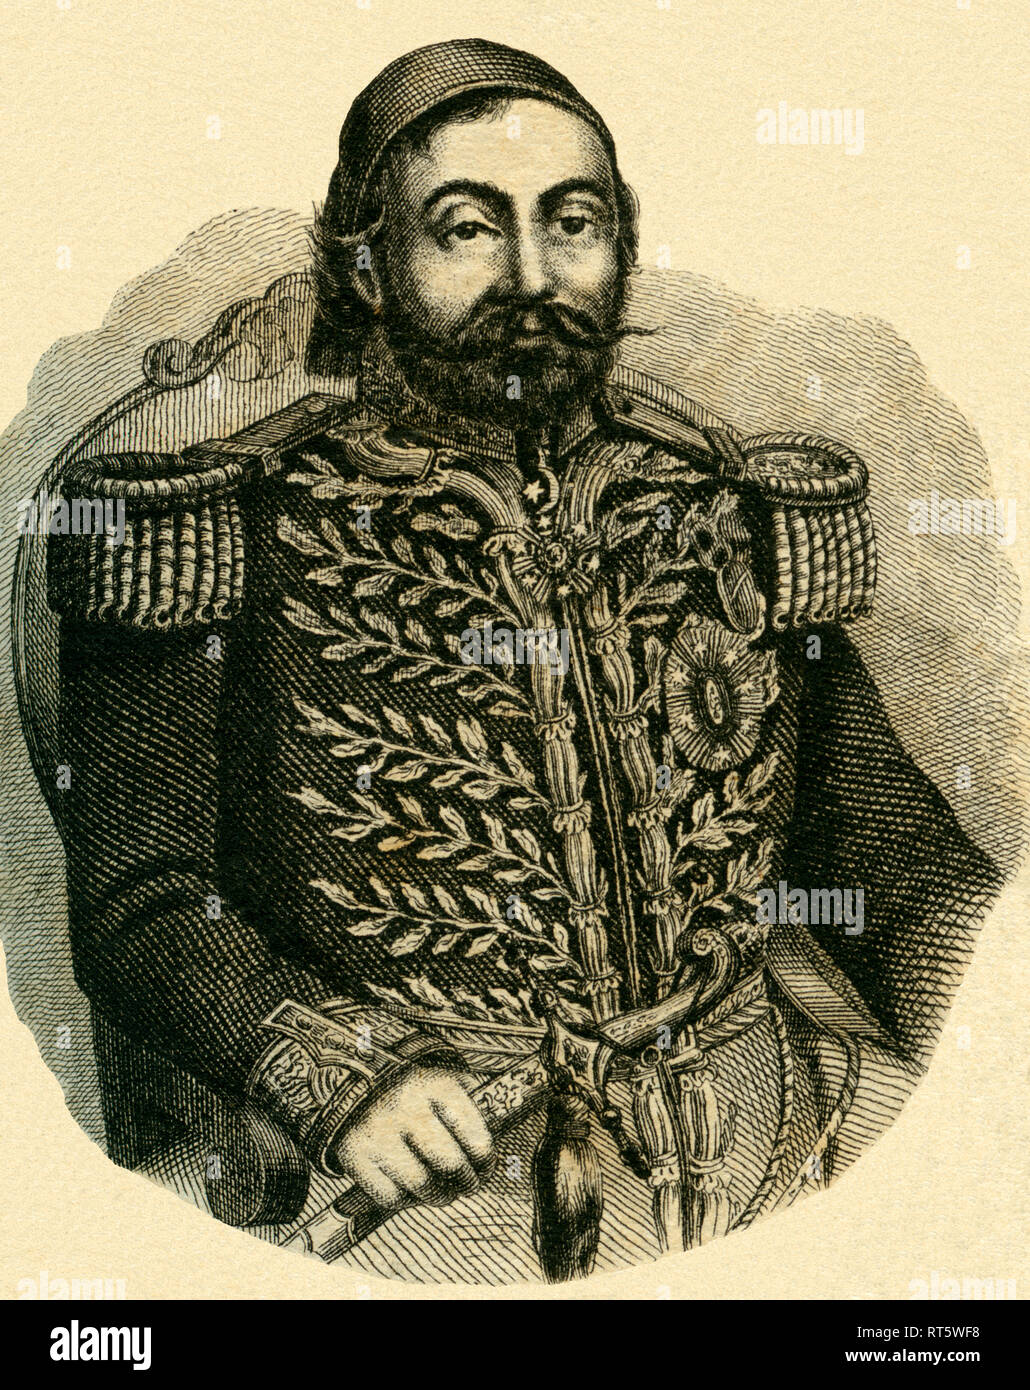 Halil Rifat Pasha, Grand admiral of the Ottoman Empire, lithography from: 'National calender for all crownlands of the imperial monarchy of Austria, 1856, published by Carl Wilhelm Medow, Leitmeritz / Praha., Additional-Rights-Clearance-Info-Not-Available - Stock Image